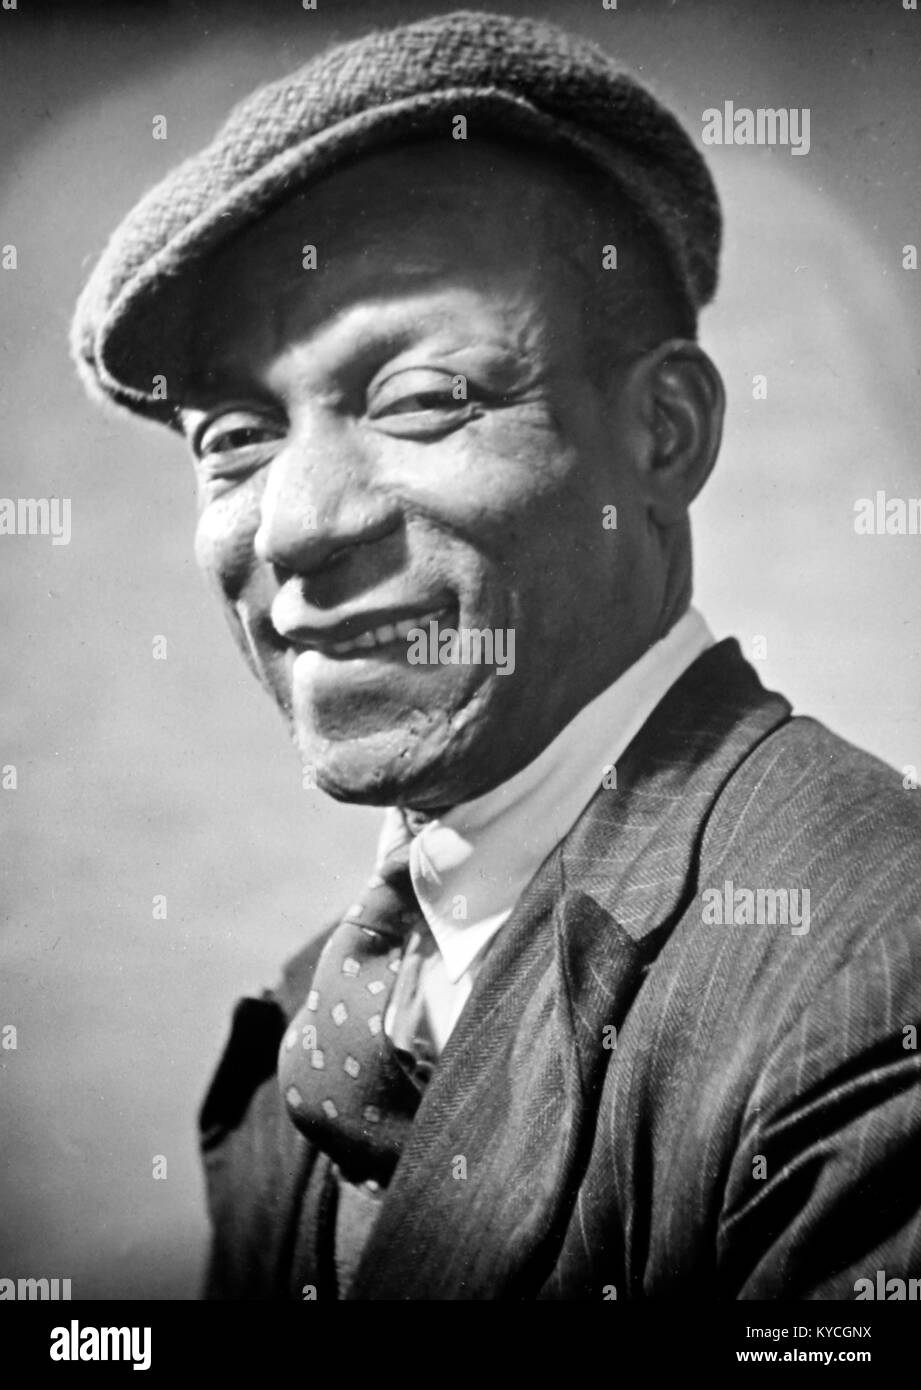 An immigrant from Trinidad, probably 1940s - Stock Image